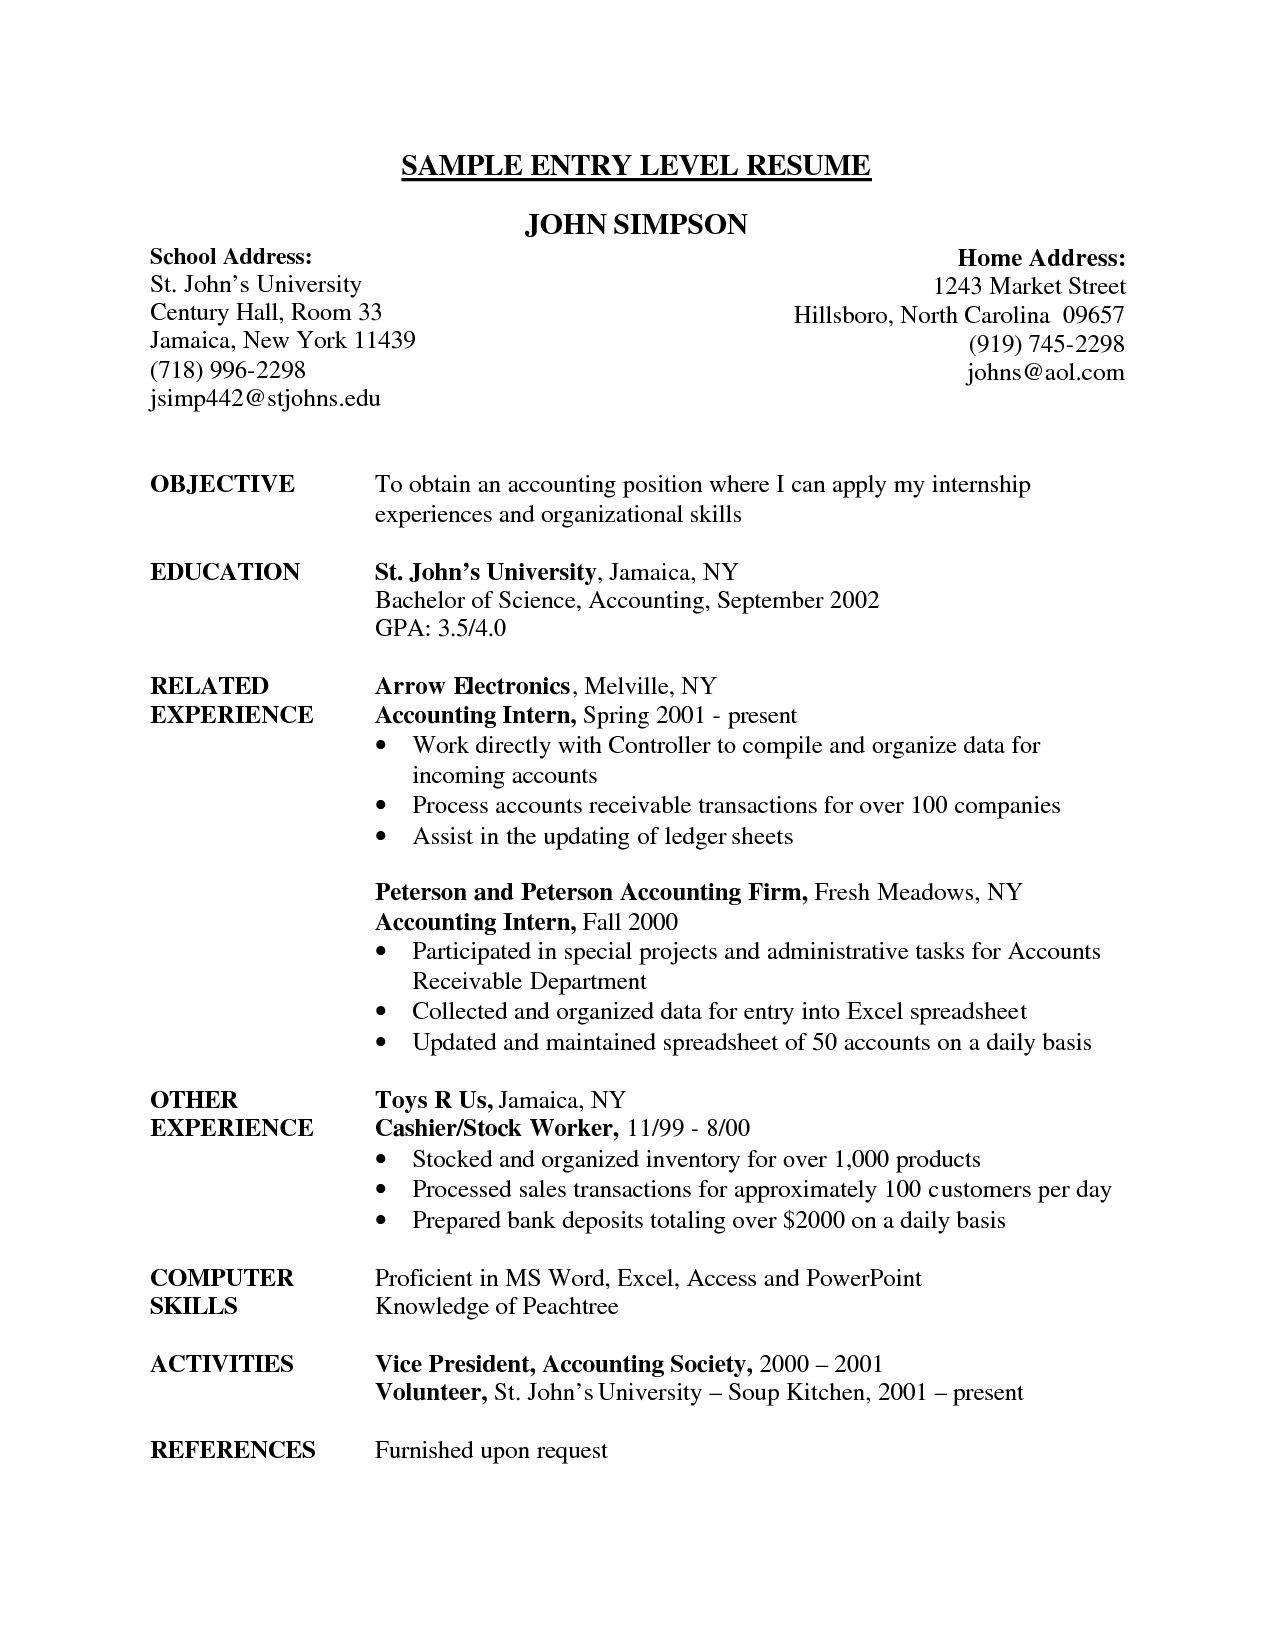 Resume Format Entry Level 1 Examples Sample